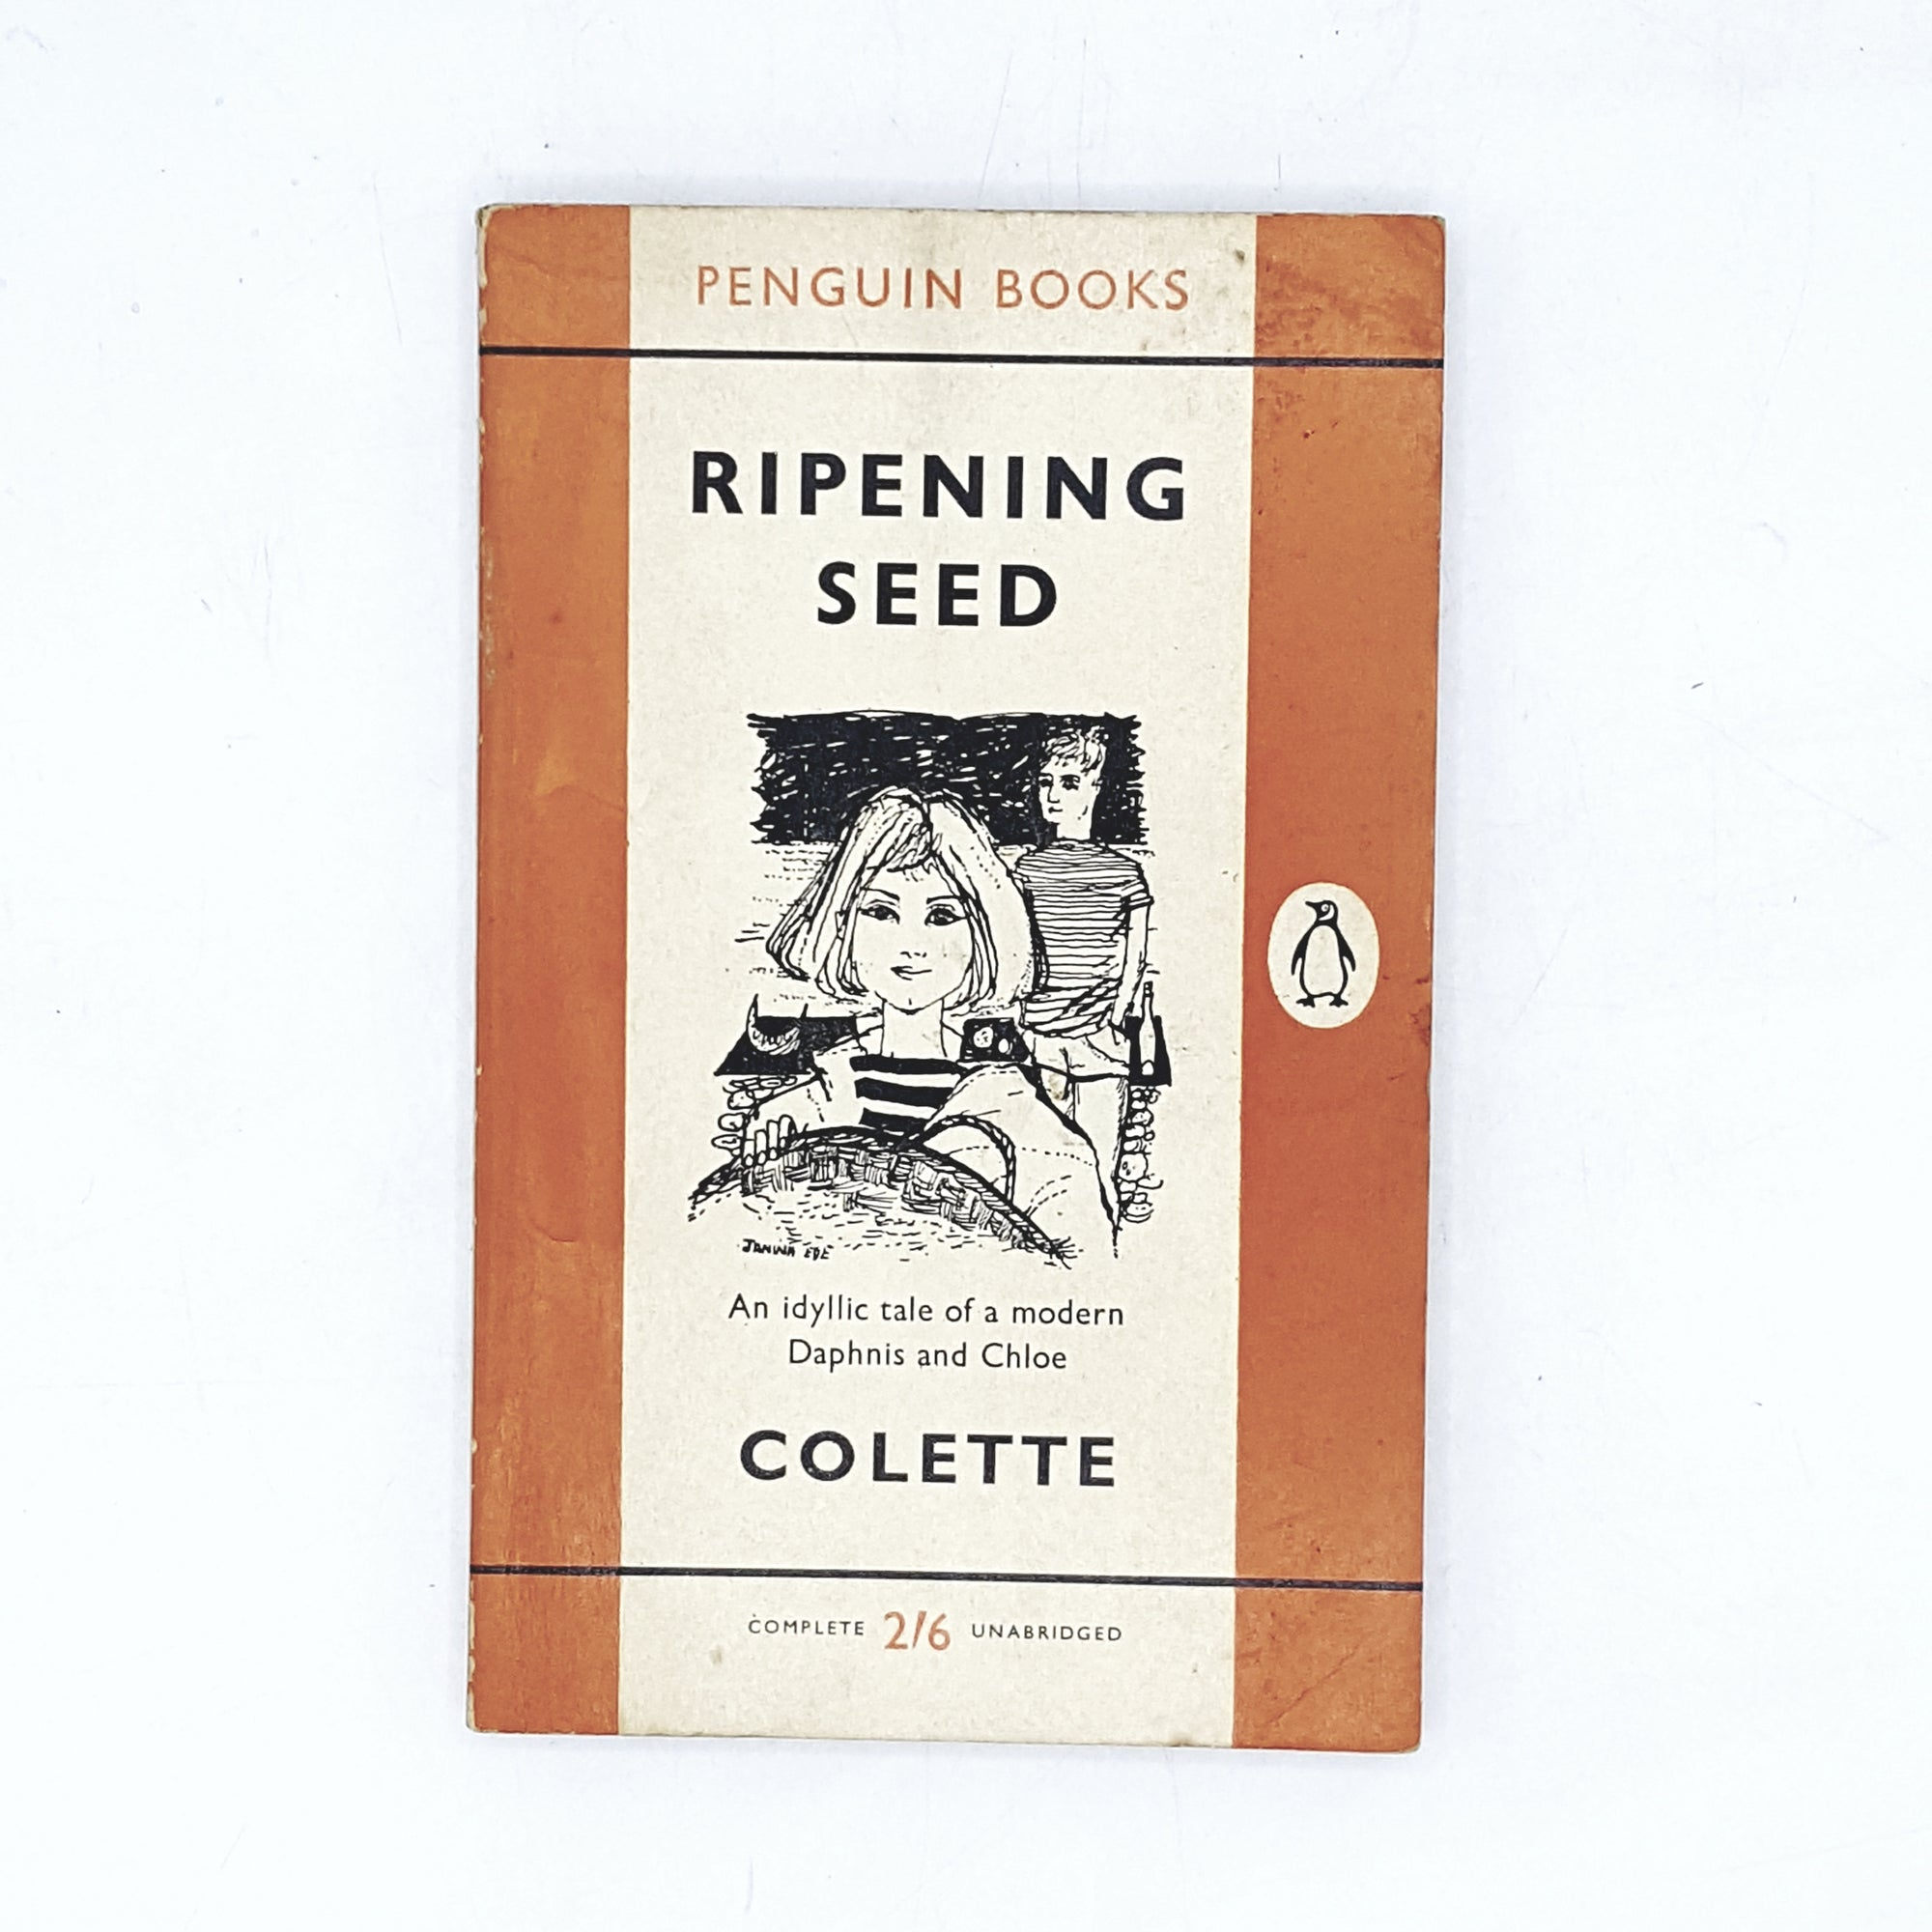 Colette's Ripening Seed 1959